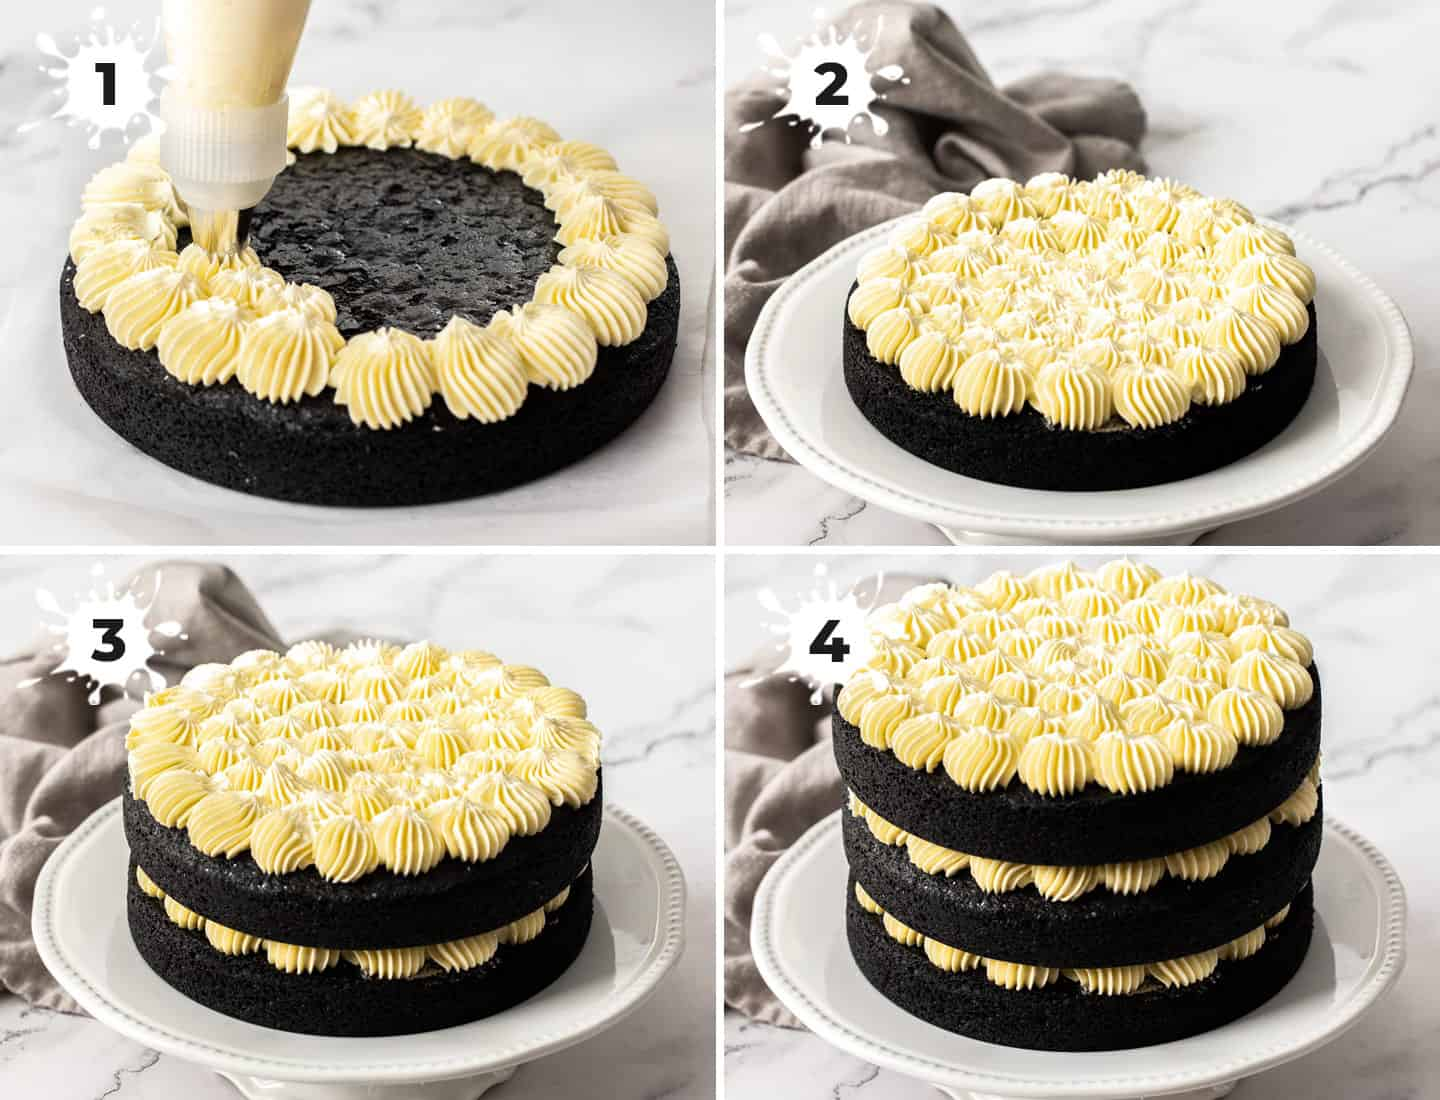 A collage of 4 images showing how to assemble the cake.